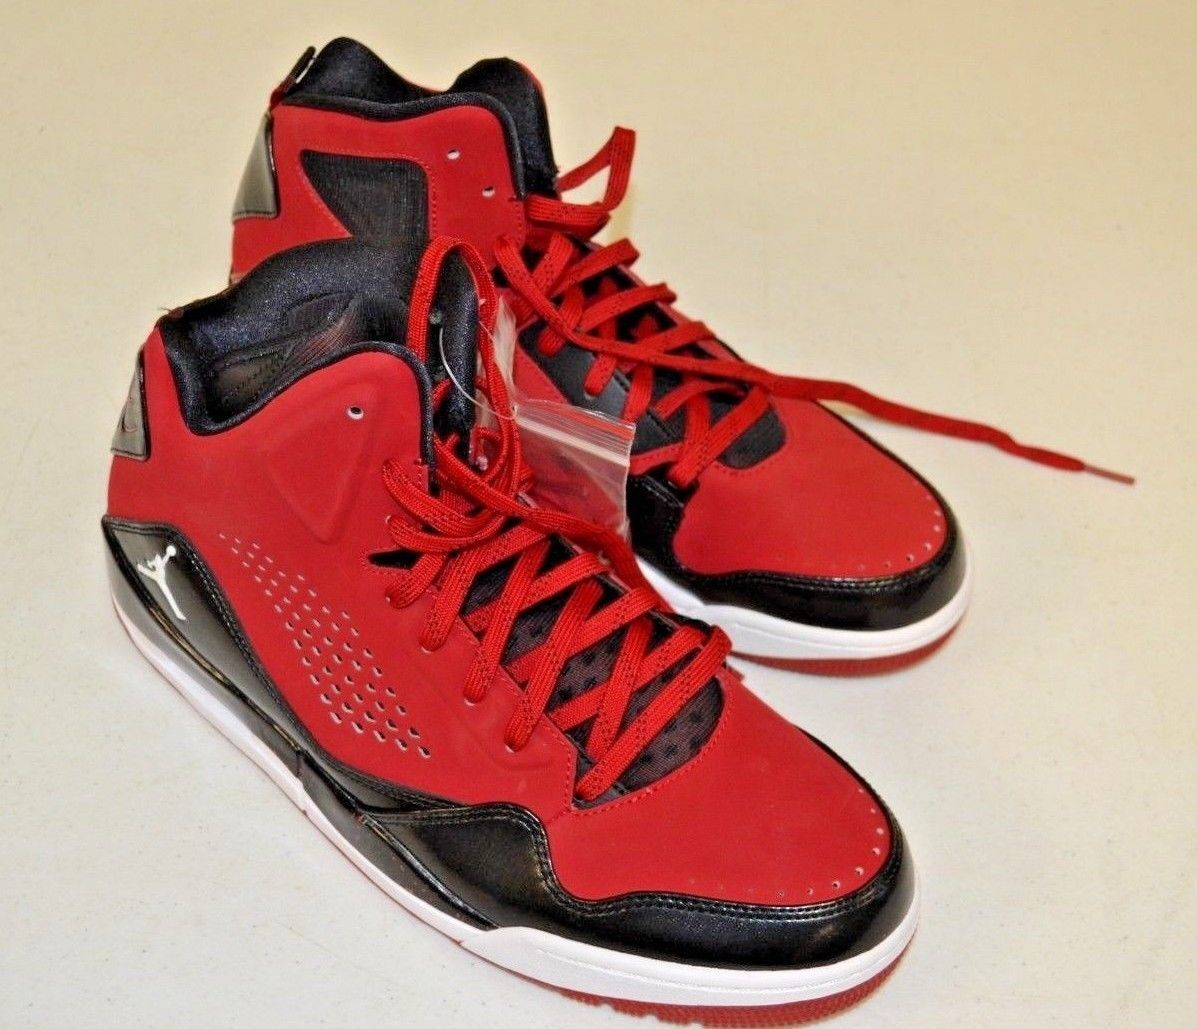 wholesale dealer edf89 8e7ee Nike Air Jordan Flight SC-3 Size Mens sz and 12 similar items. S l1600